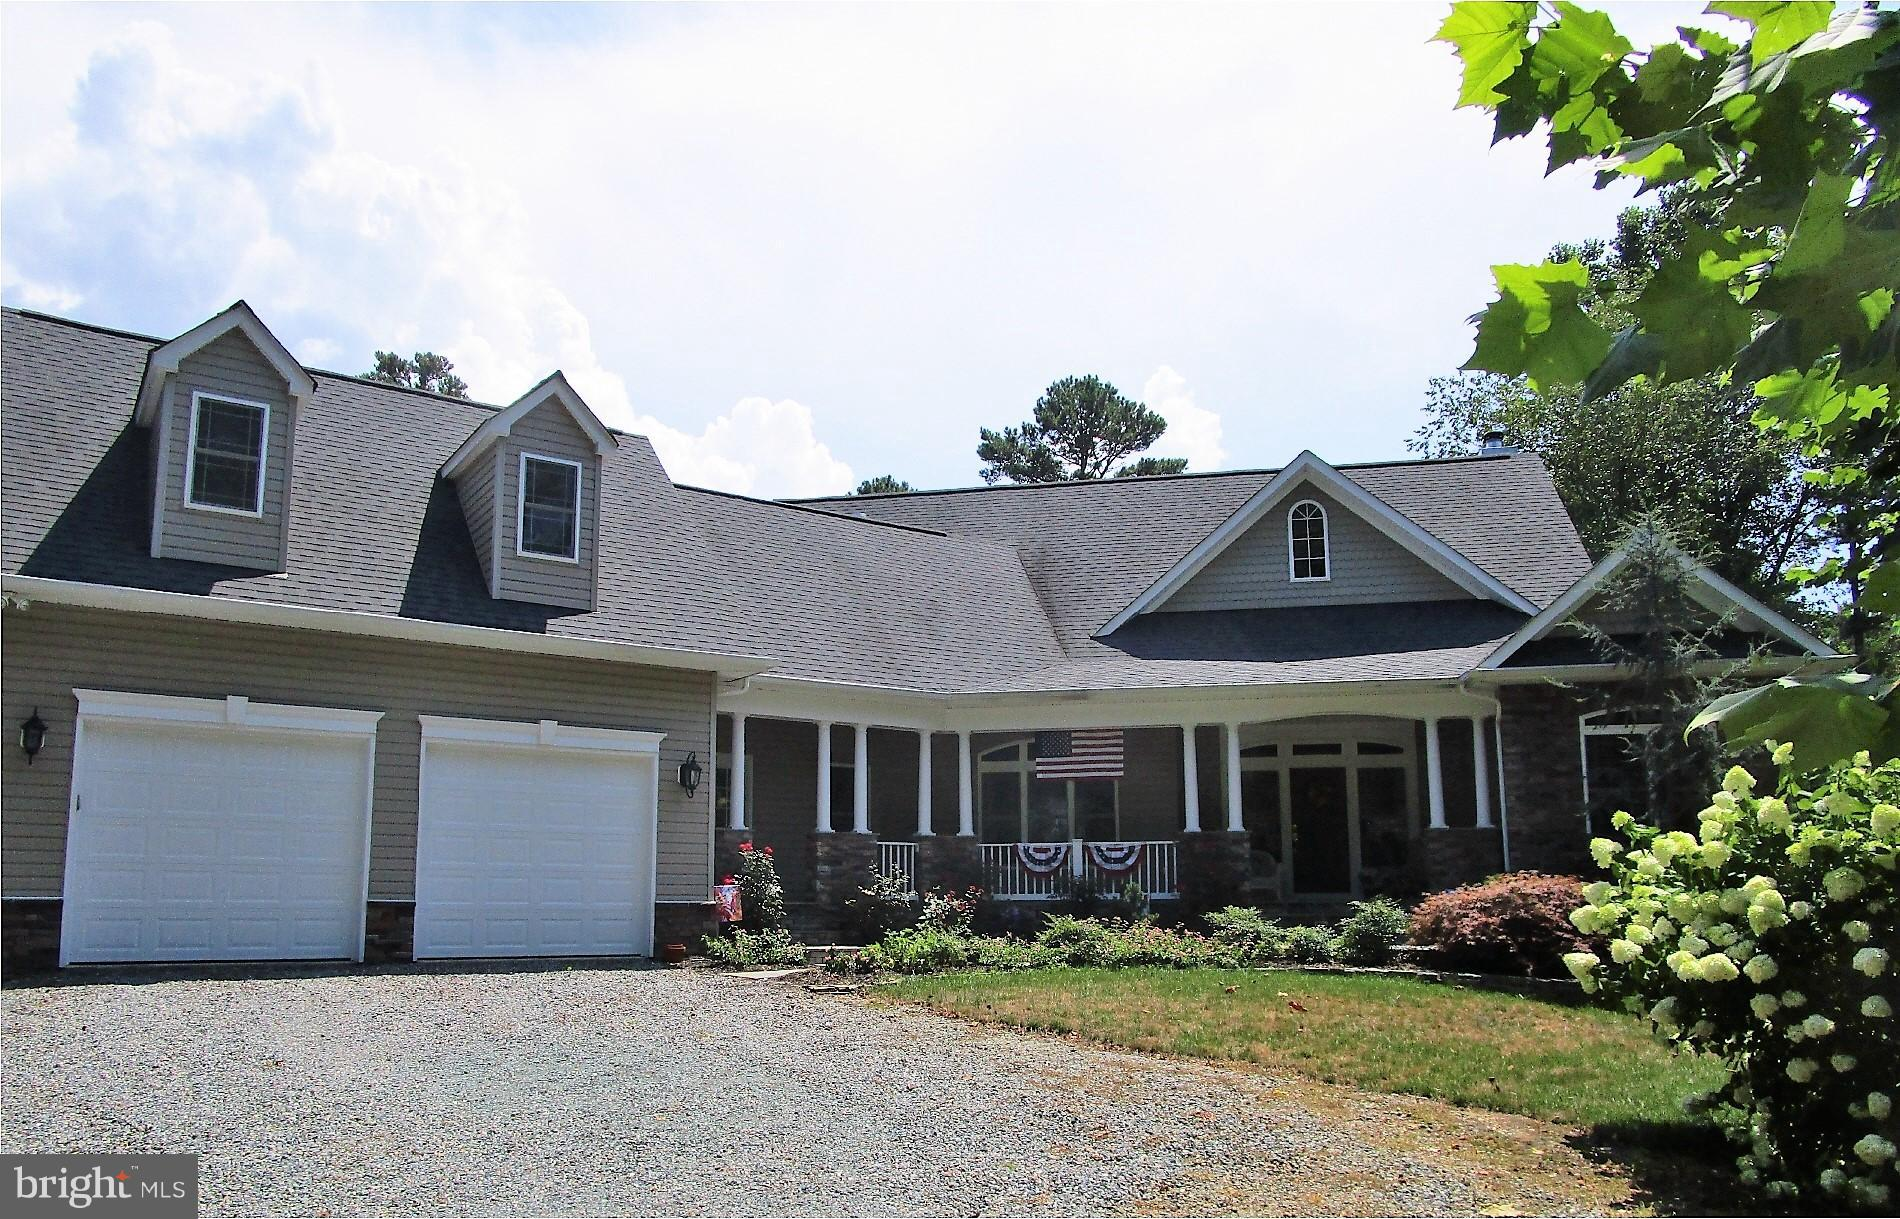 24222 LANDS END DRIVE, ORANGE, VA 22960